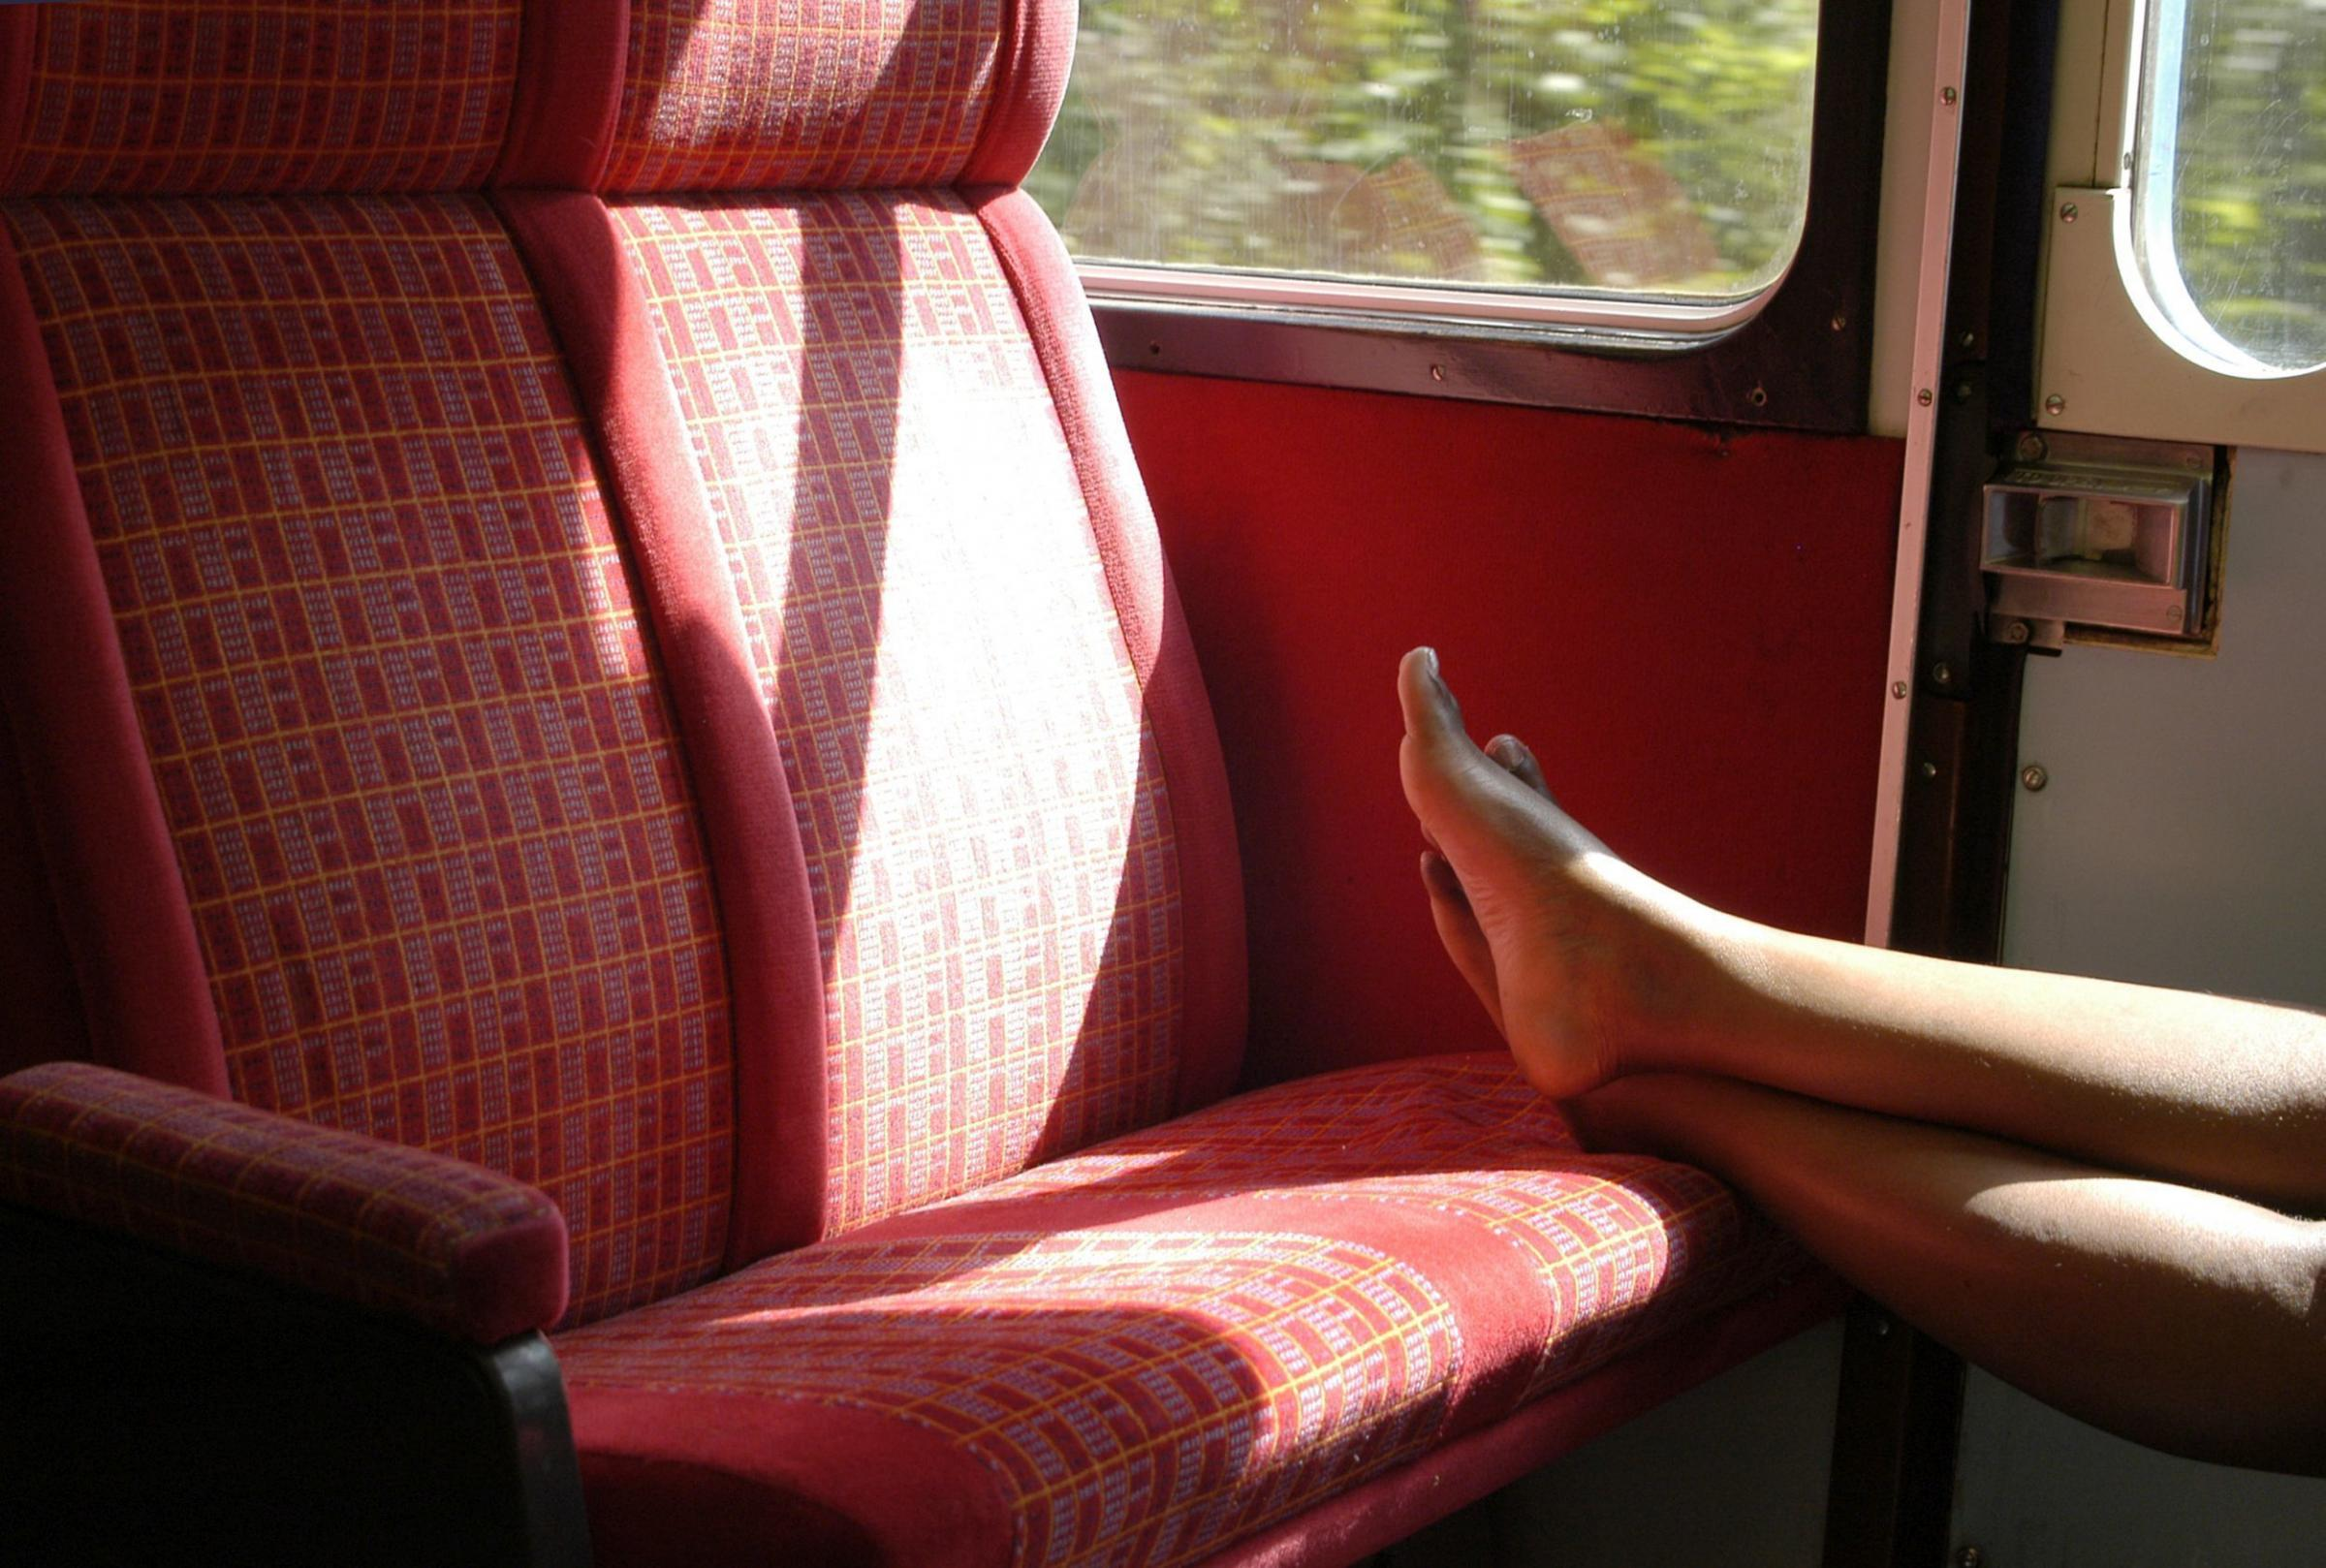 Why do people put their feet up on train seats?